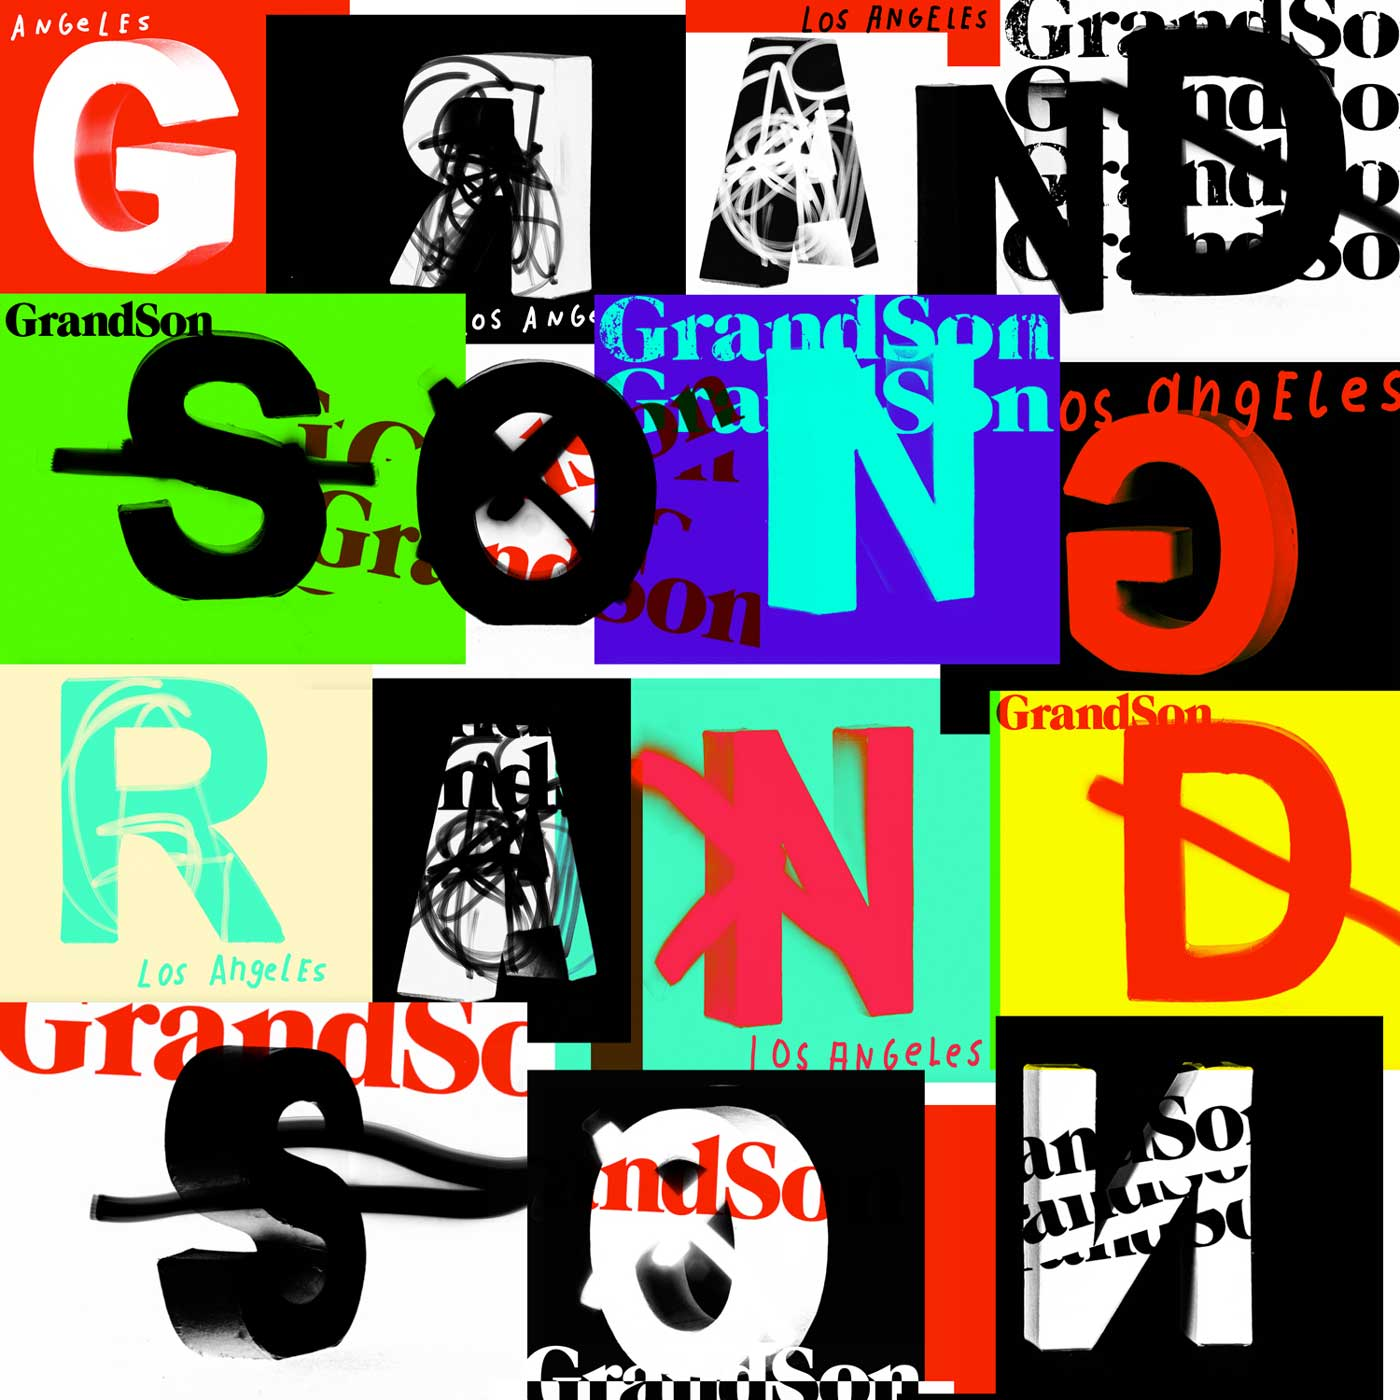 Typographic Poster for GrandSon Los Angeles by Jens Wagner